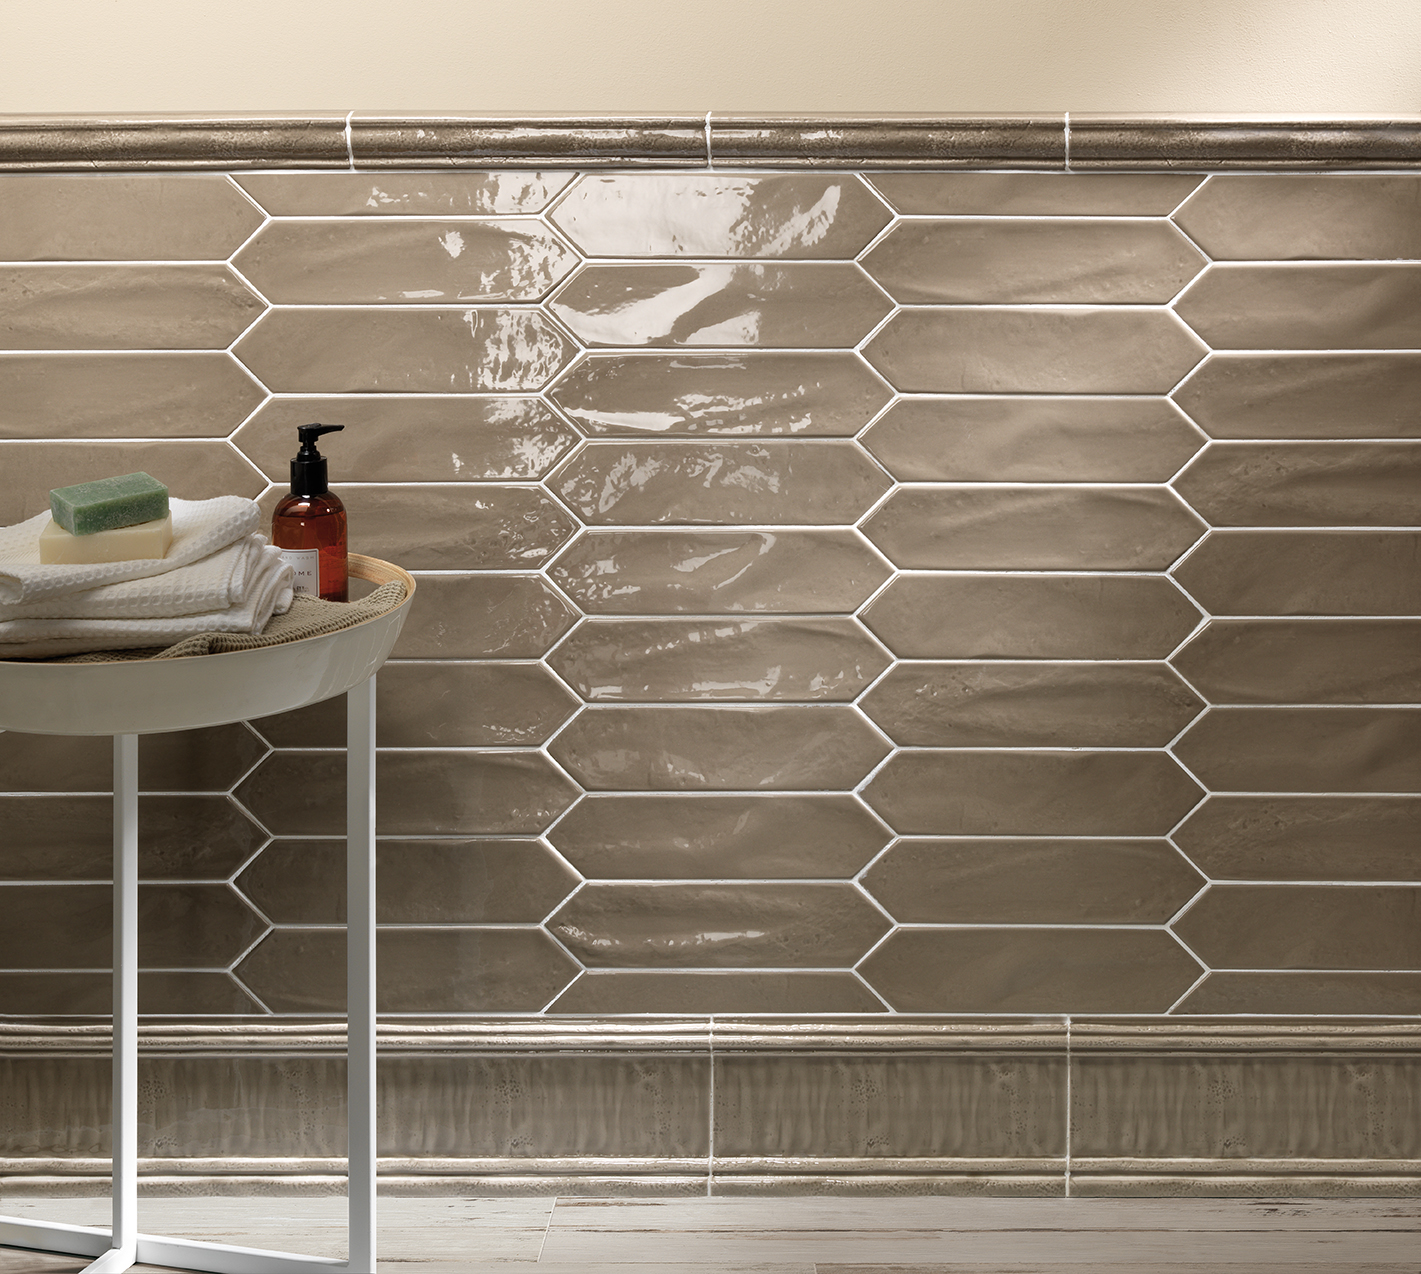 kitchen wall tiles cabinets michigan settecento | mosaici e ceramiche d'arte. floor and ...